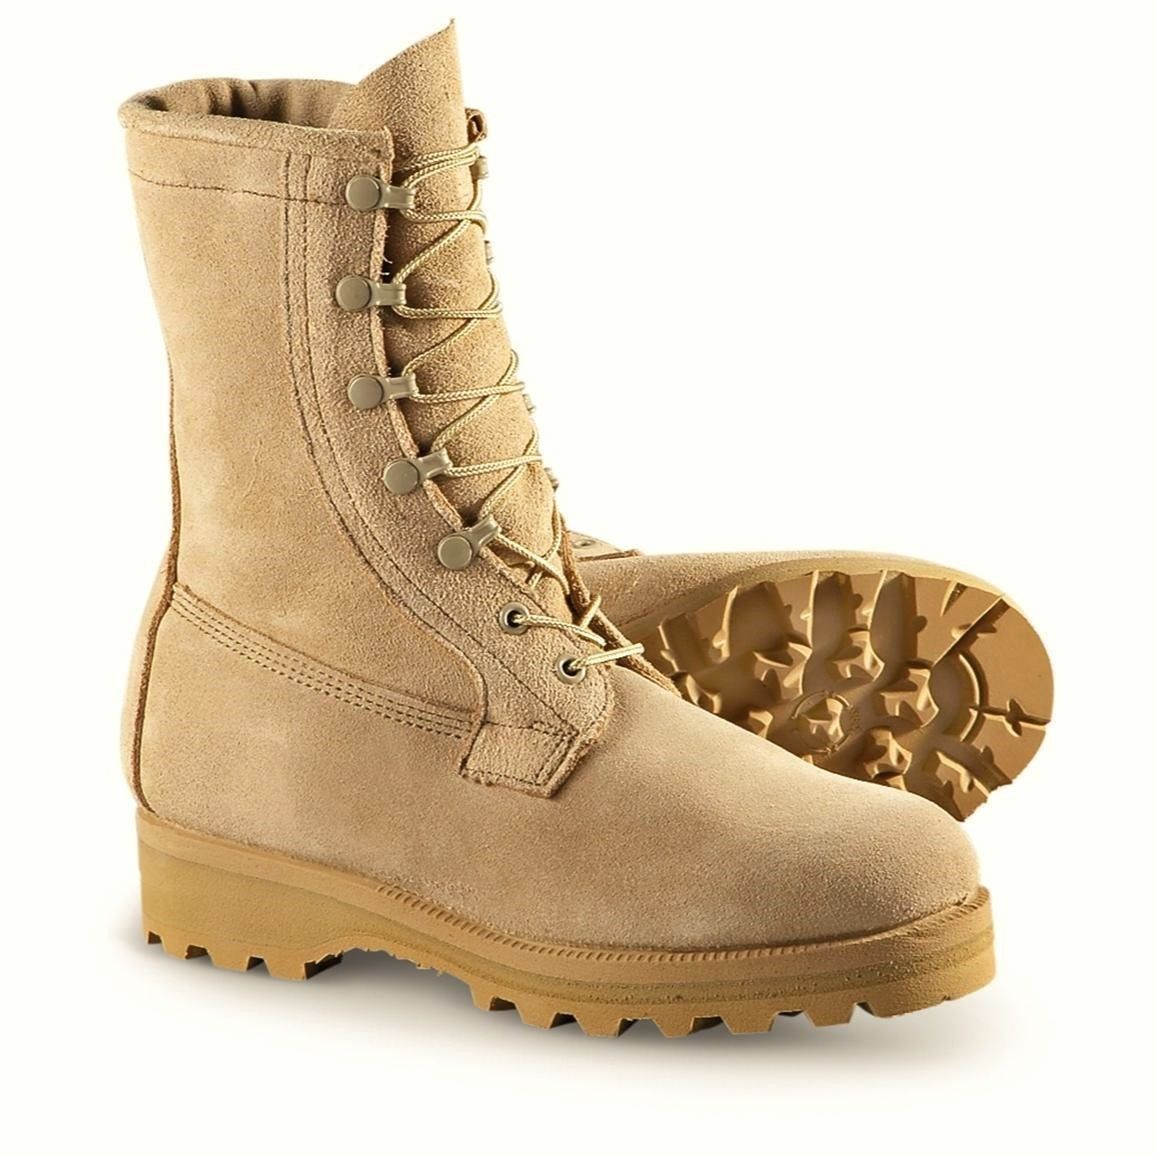 Primary image for Bates E11461B,ICWB Tan BOOTS Military Intermediate Cold Wet Combat Gore-tex.5.5R